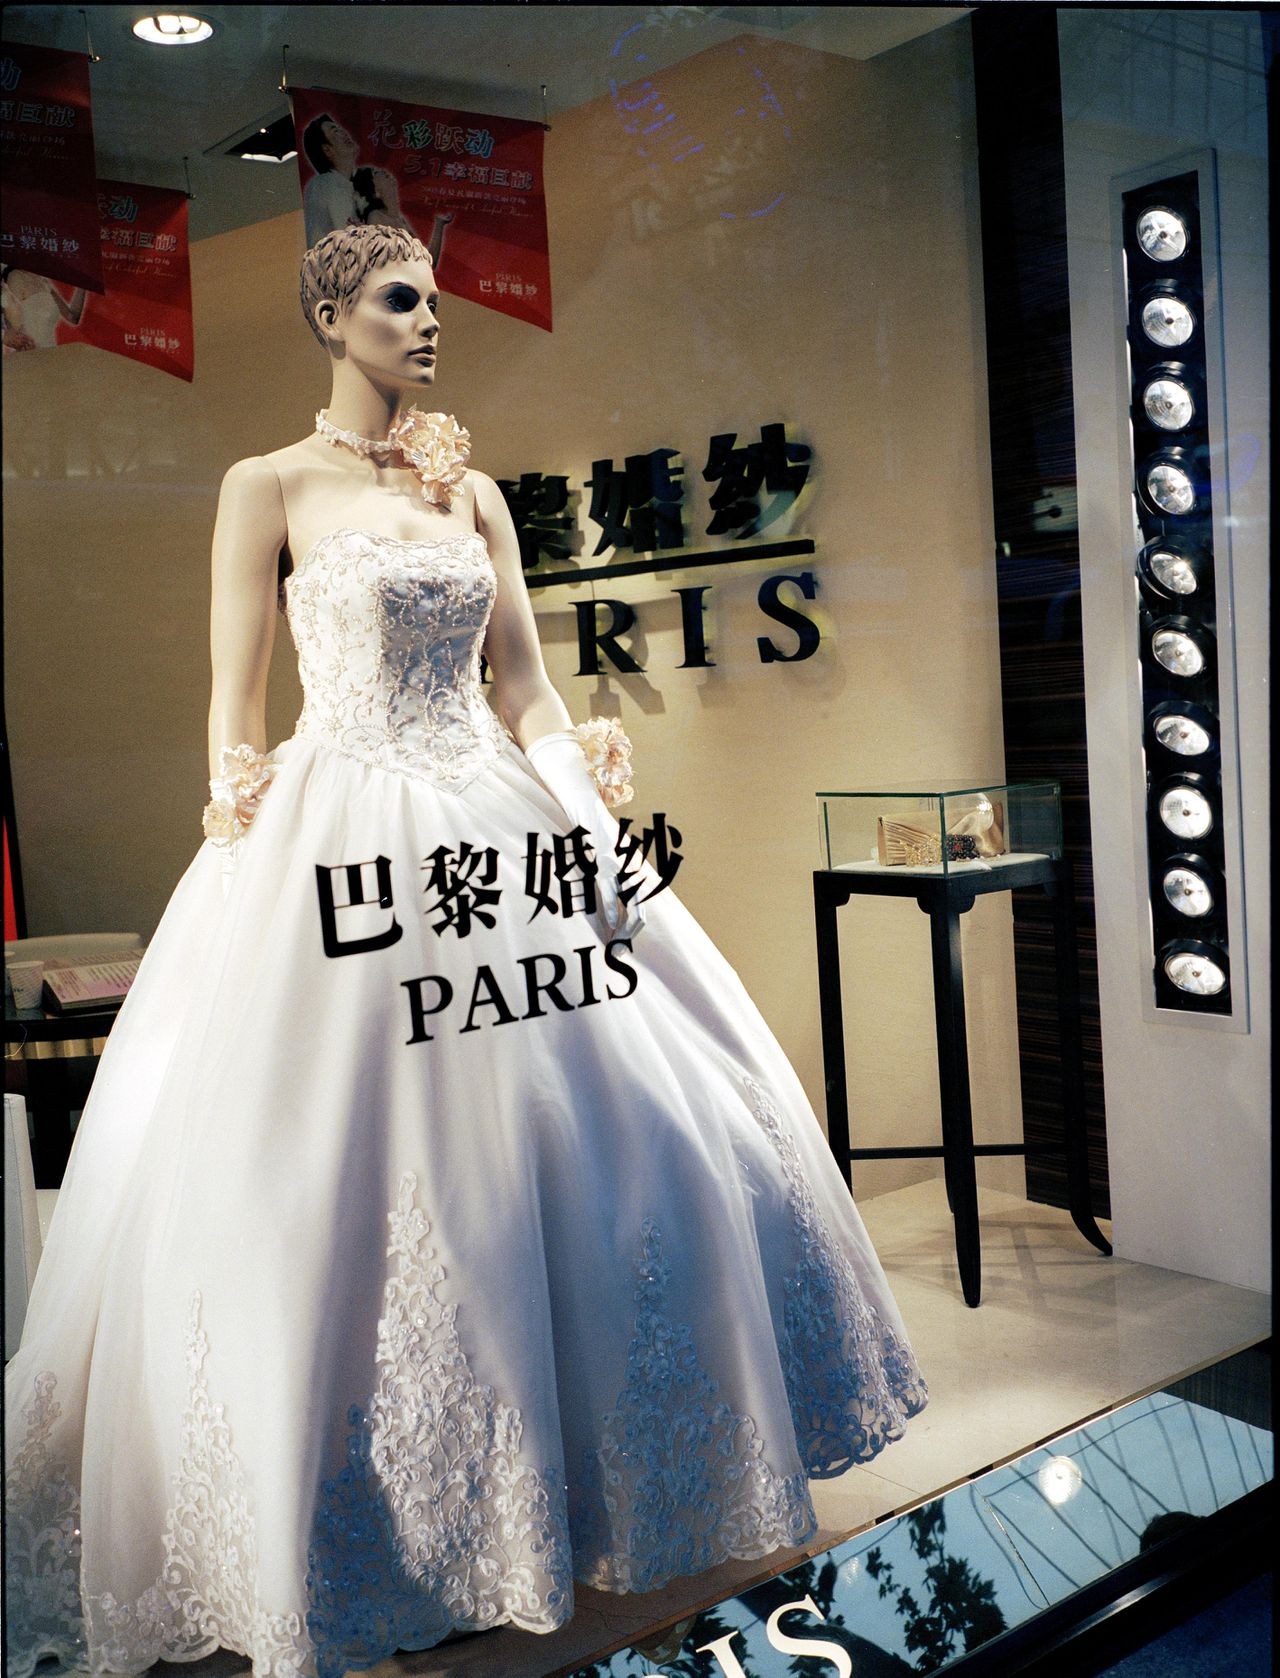 De Chinese trouwindustrie is goed voor een omzet van 210 miljard euro. Een winkel met trouwjurken in Wuhan. (Foto AFP) Shanghai, China Mei 2005 Wedding is big Bussines Foto : Marleen Daniels/HH